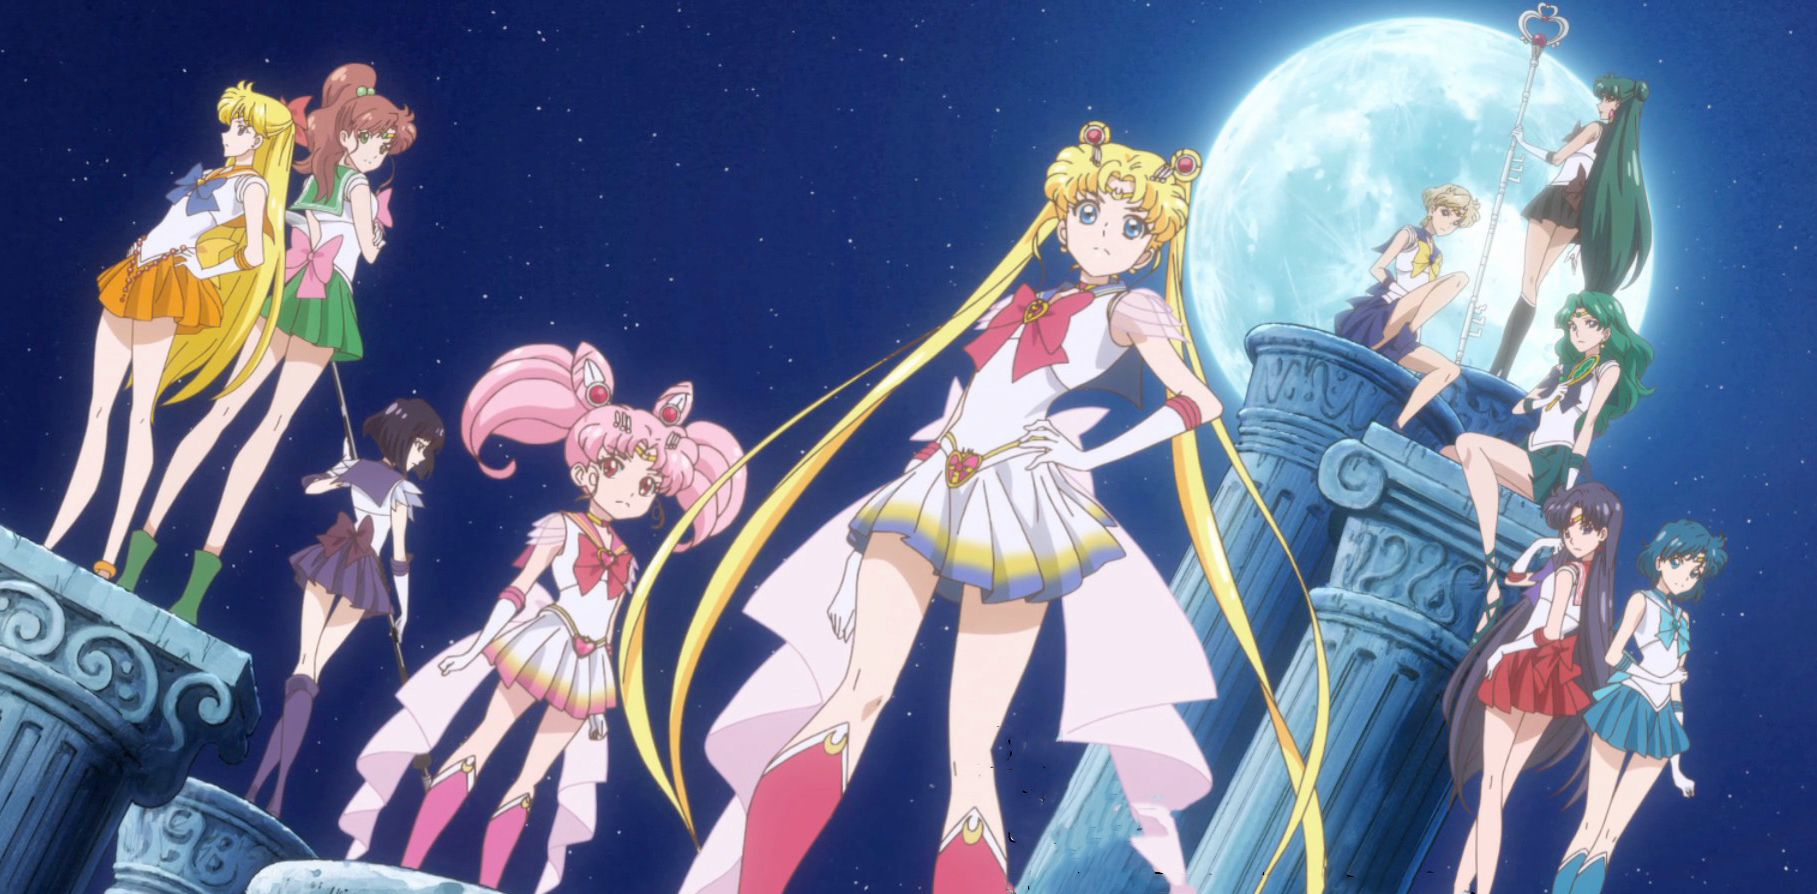 Sailor Moon: Every Sailor Senshi Ranked From Least To Most